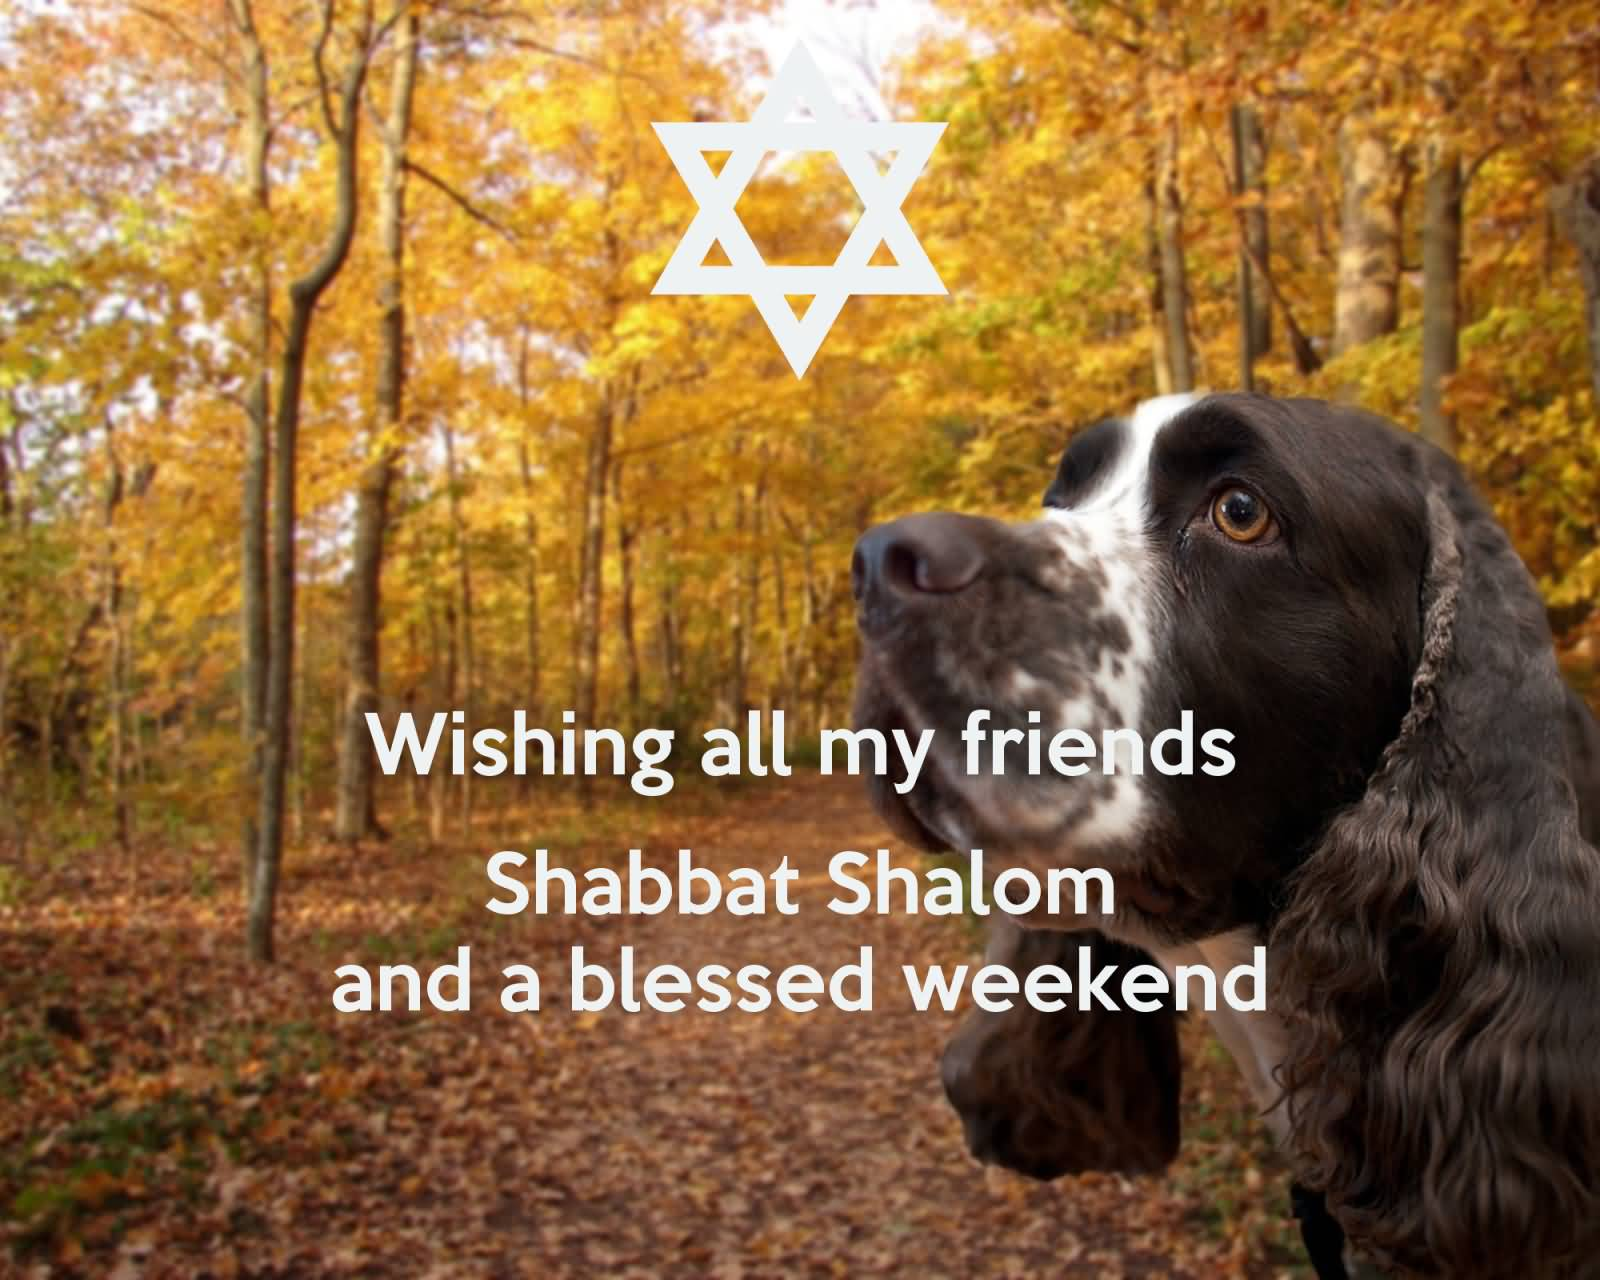 60 shabbat shalom greeting pictures wishing all my friends shabbat shalom and a blessed weekend dog picture kristyandbryce Image collections